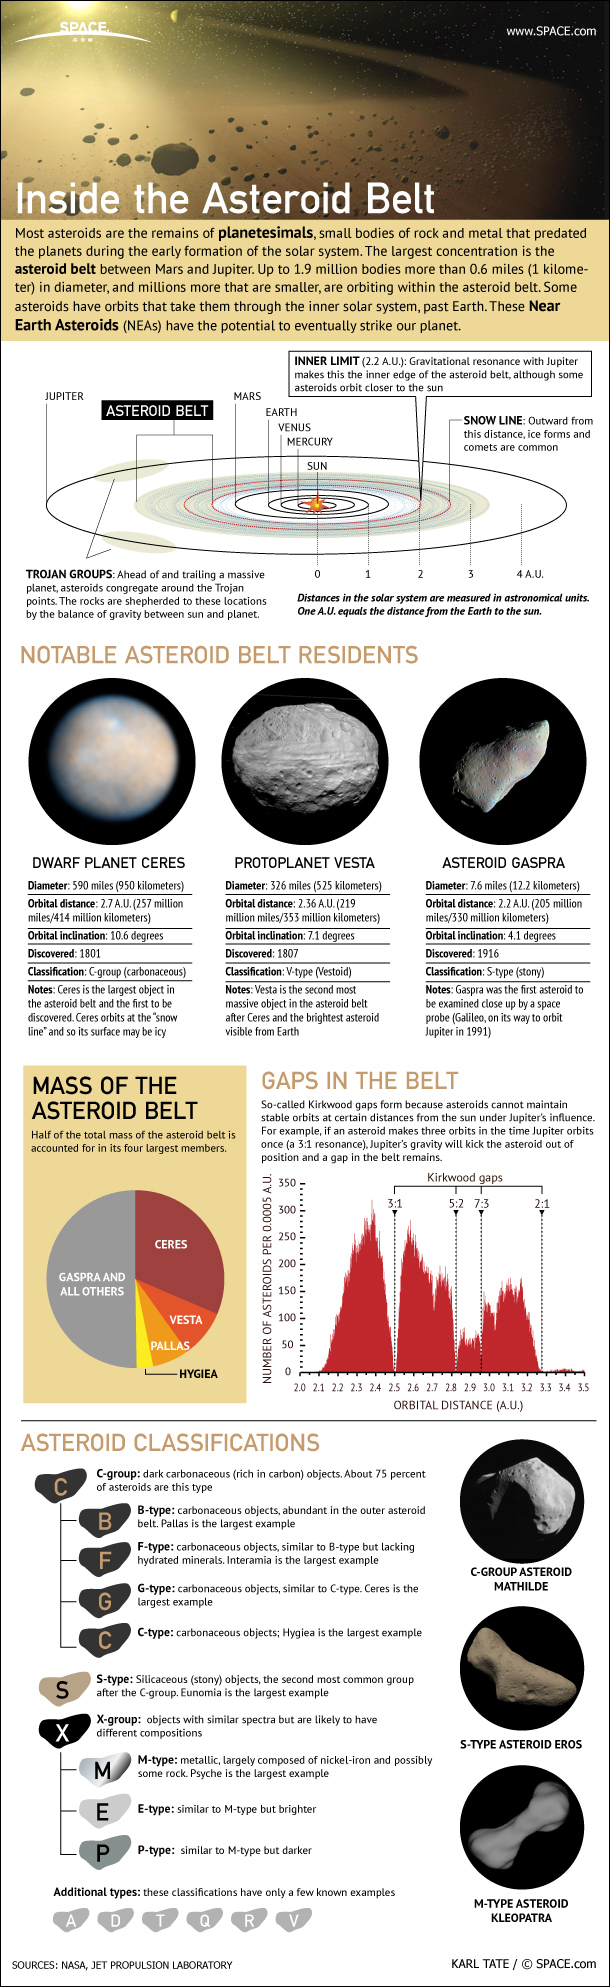 The Asteroid Belt Explained: Space Rocks by the Millions (Infographic)